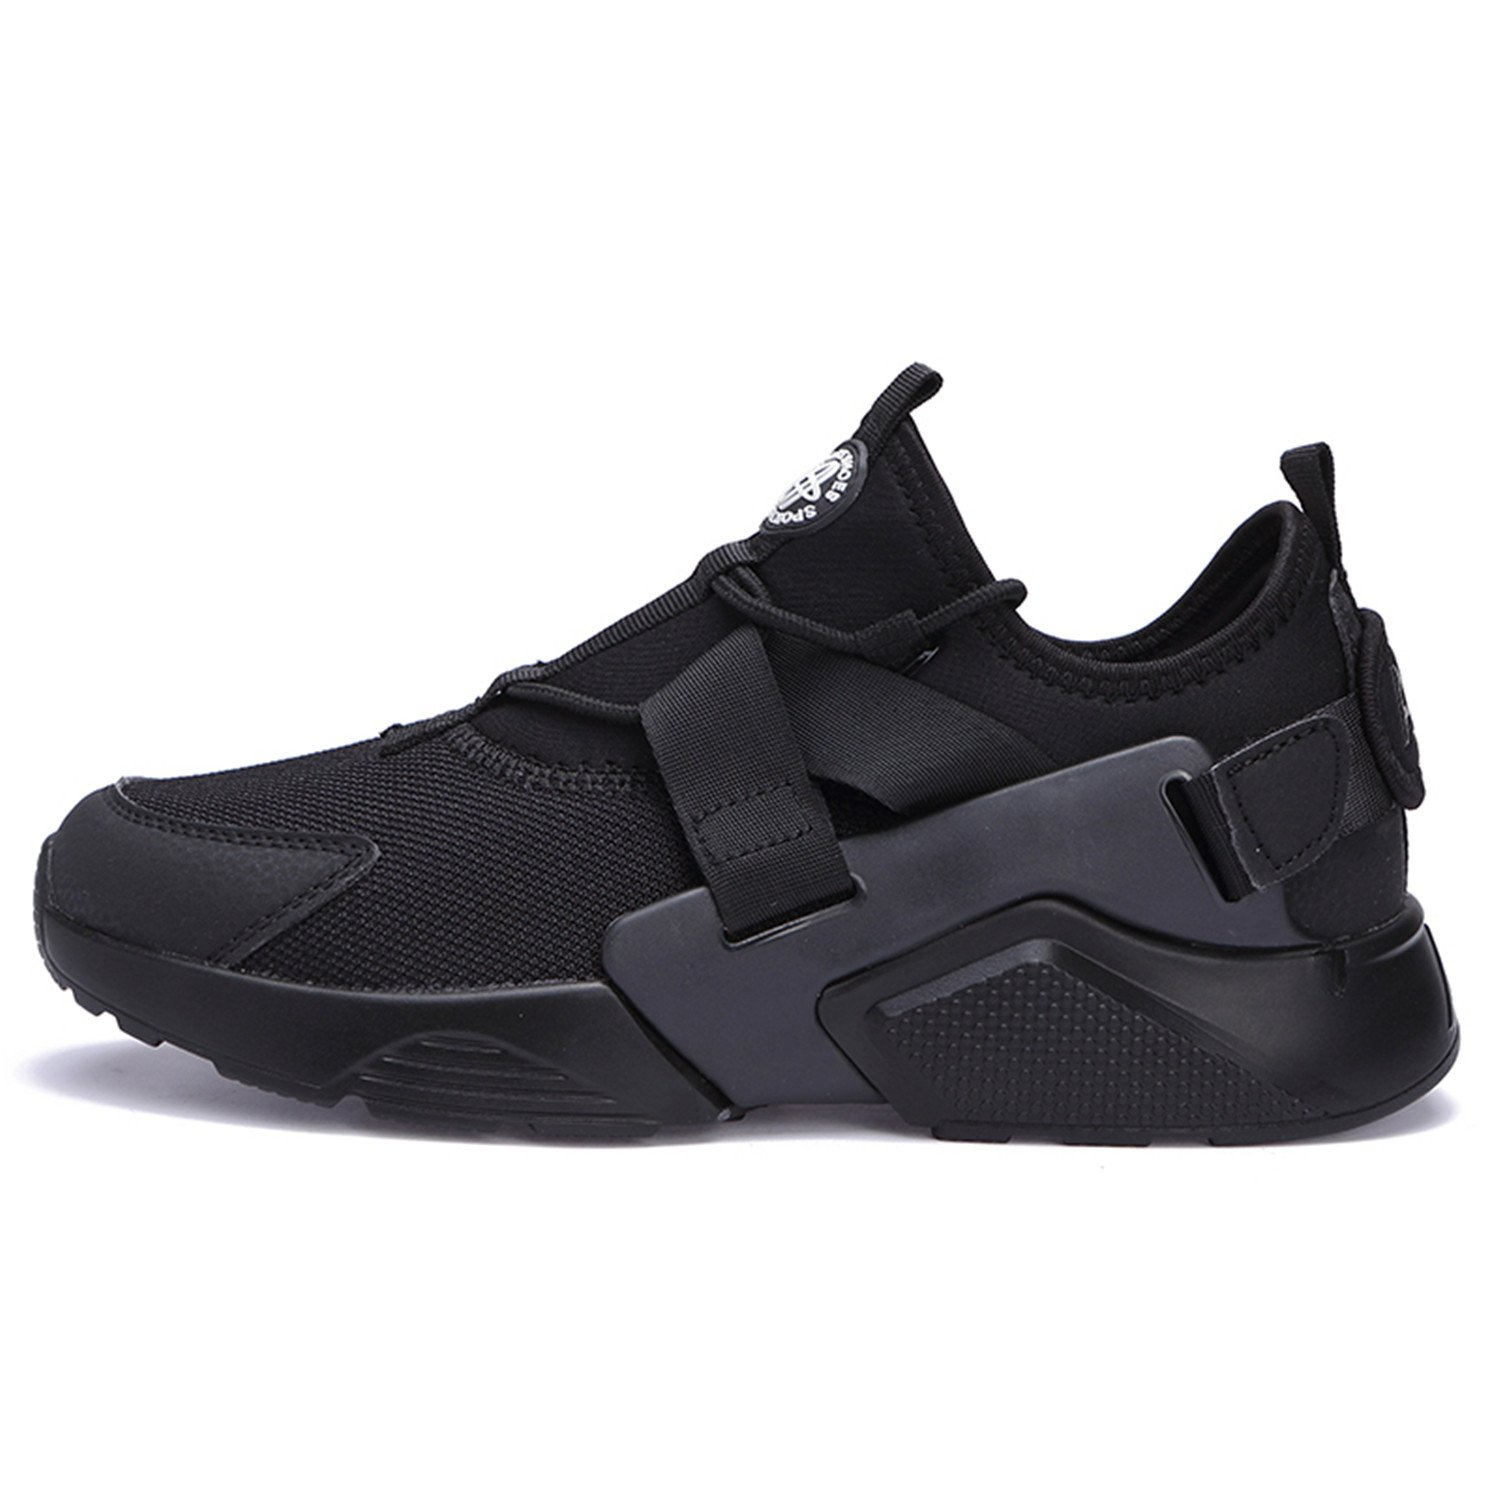 Amazon.com | Chiffoned Women Men Sport Shoes Woman Chaussures Femme Air Huaraching Shoes Zapatos Hombre Jogging Sneakers | Fashion Sneakers